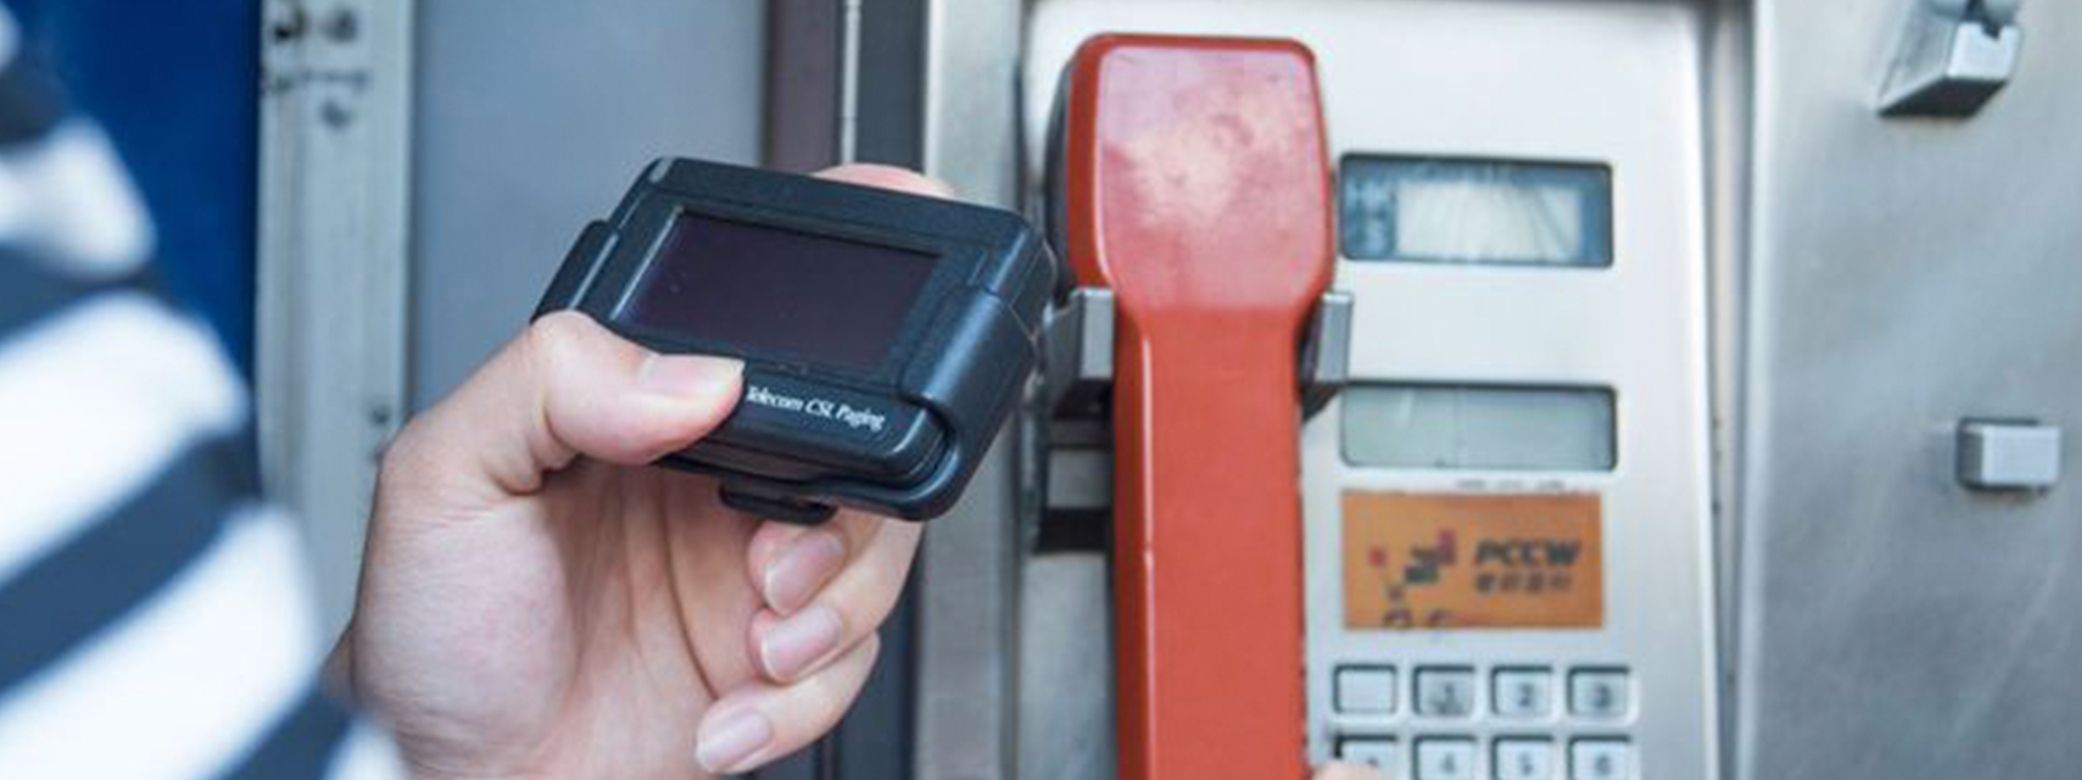 The End of an Era: Tokyo Telemessage No Longer Provides Pager Service